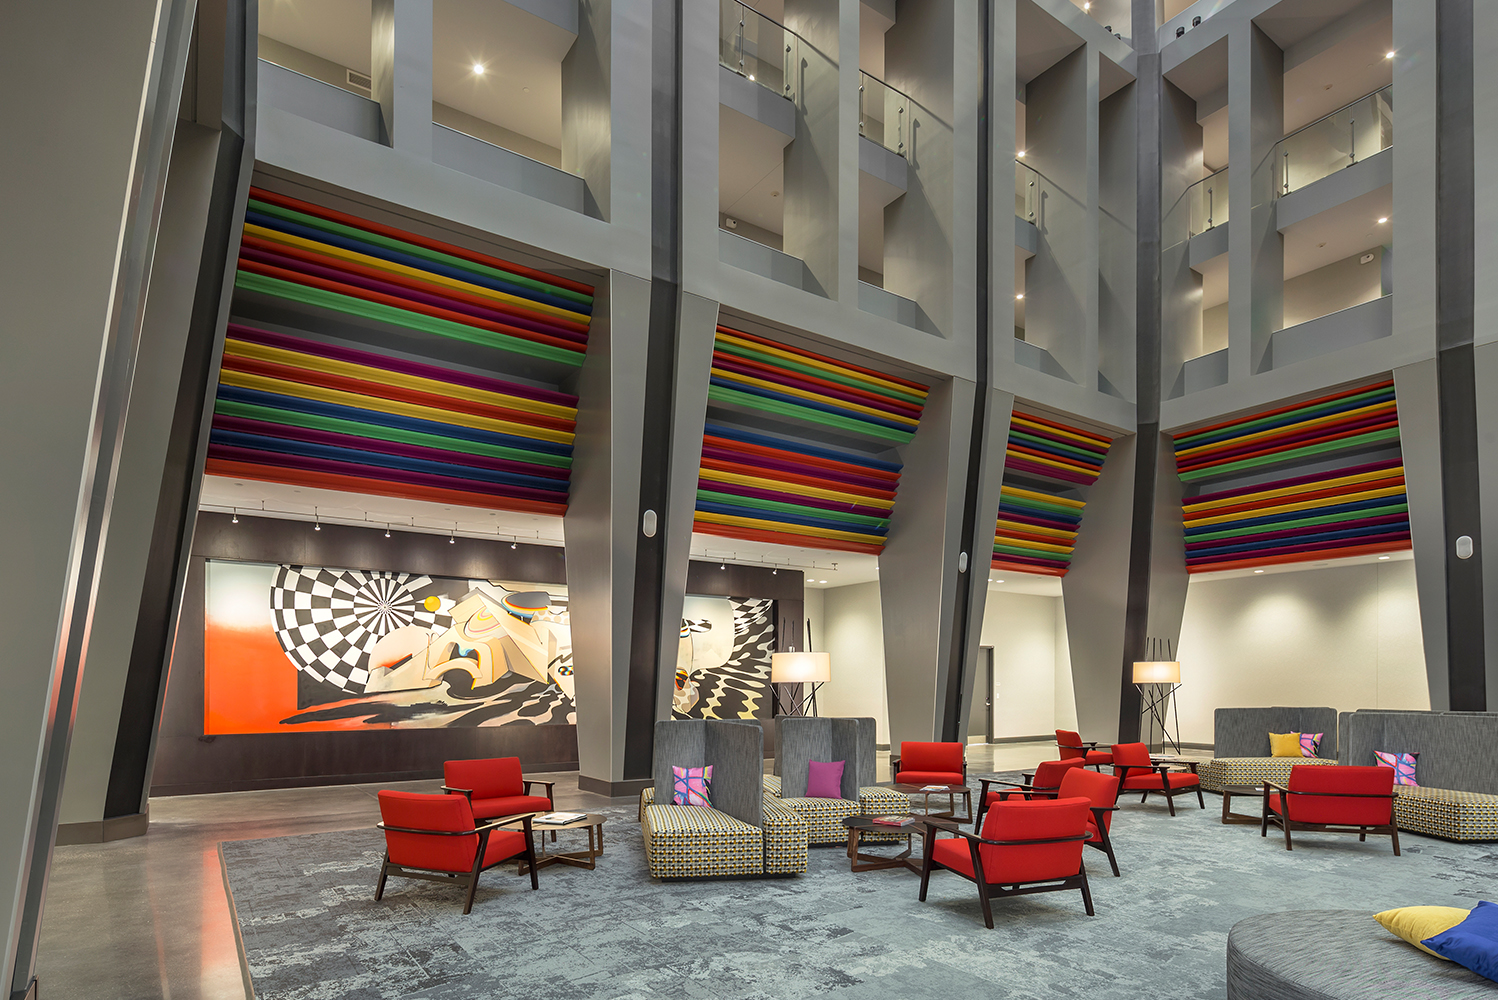 According to Nicole Smith, associate at HBA's Atlanta office, the brief called for a boutique, art centric hotel with an emphasis on attracting meeting groups.